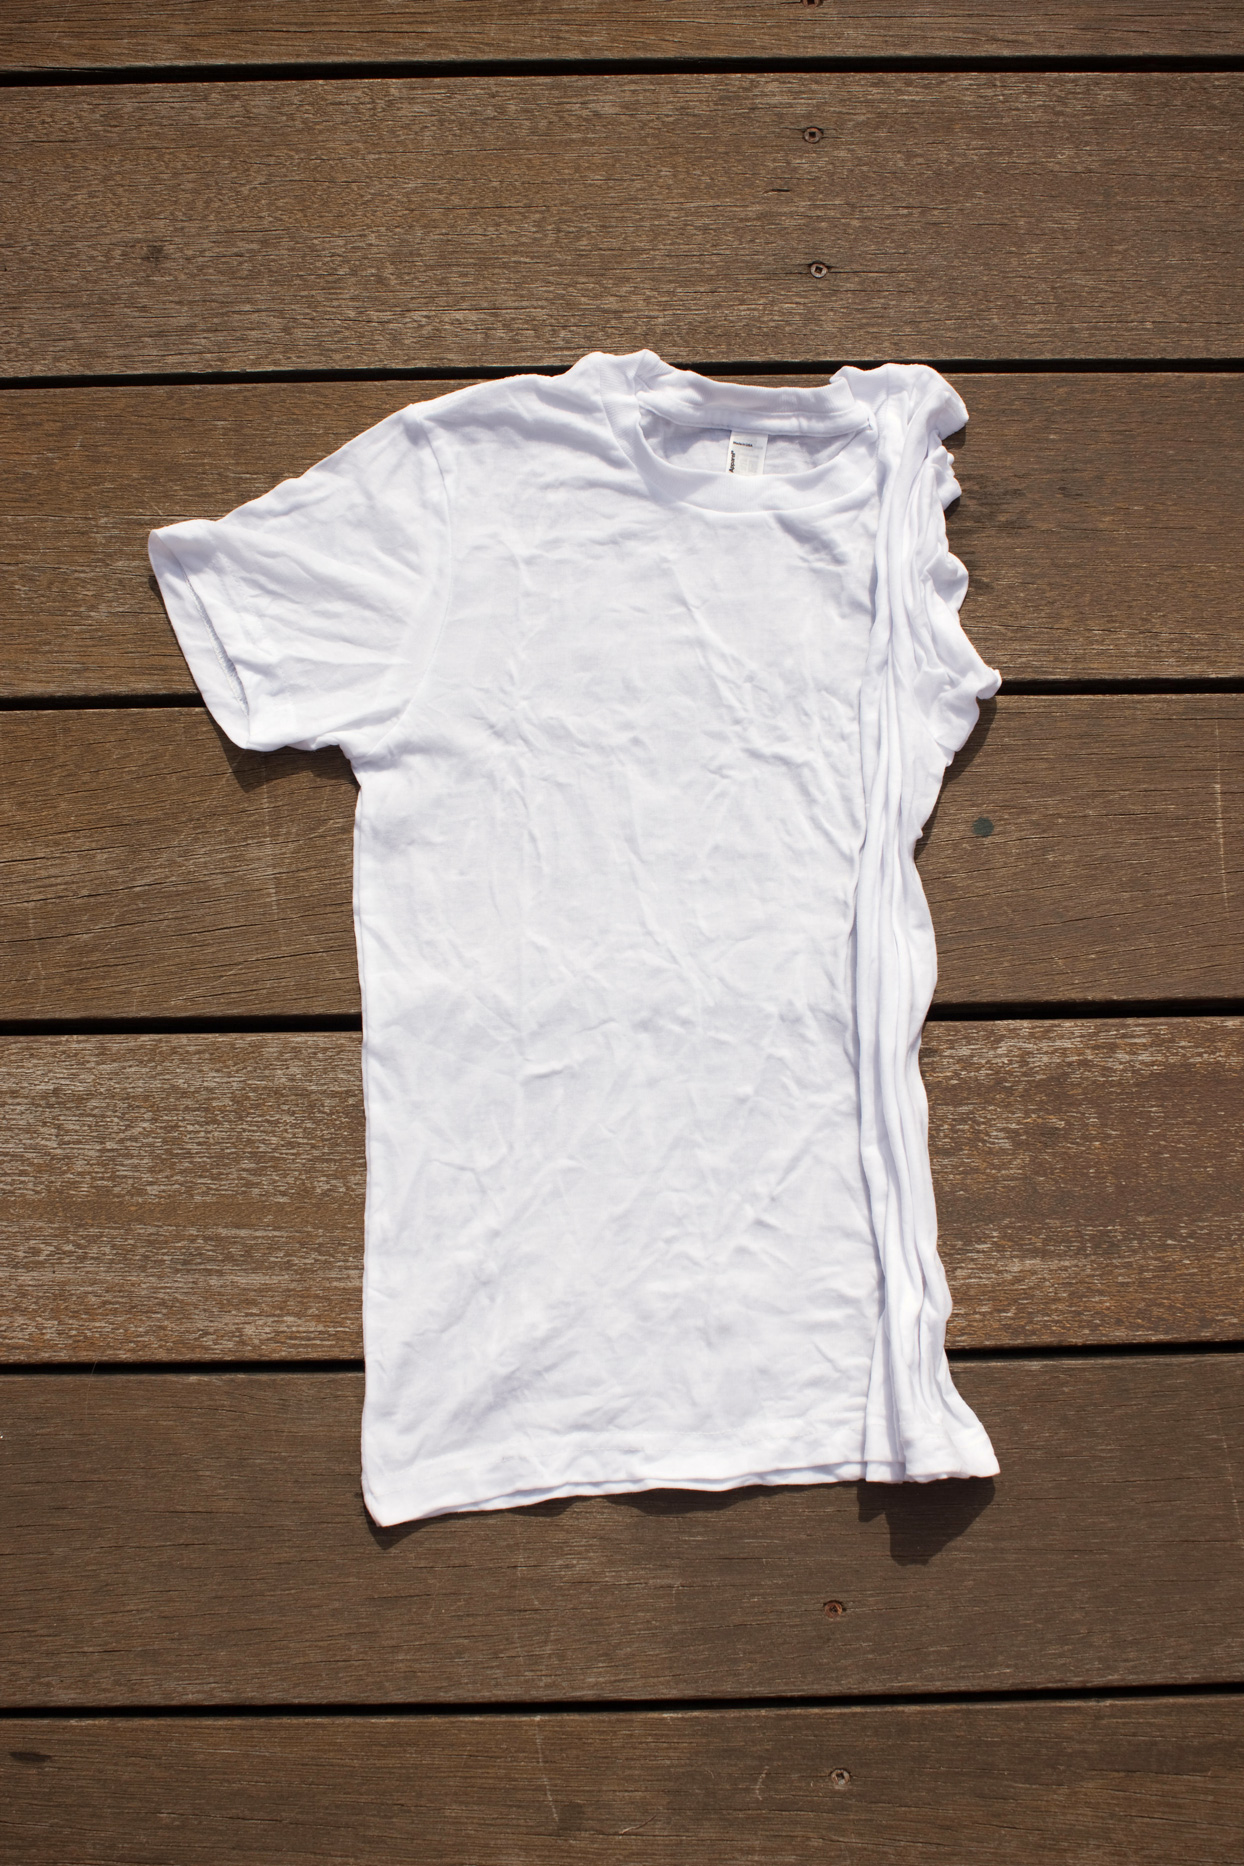 t-shirt rolled up